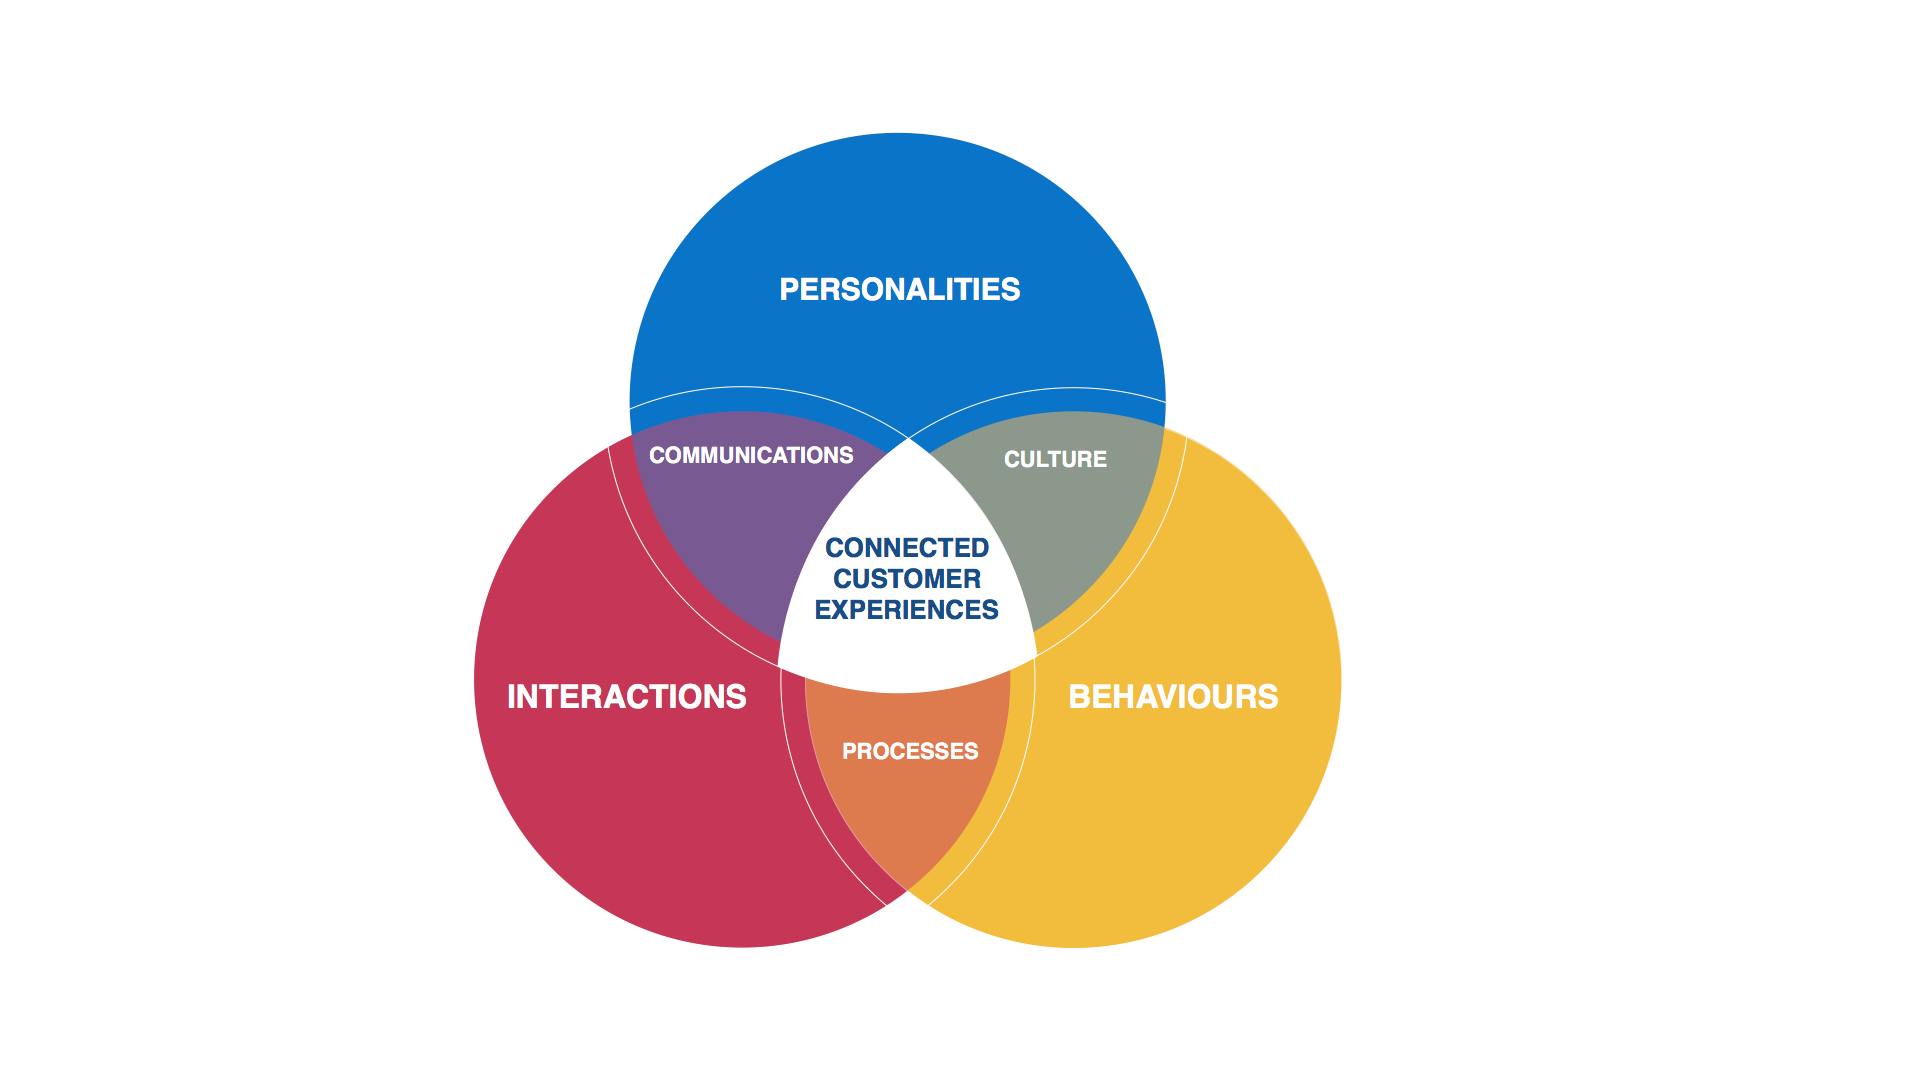 Diagram of three intersecting circles labelled Behaviors, Interactions and Personalities. The intersecting segments are labelled Communications, Culture and Processes, coming together in a central panel labelled Connected Customer Experience.